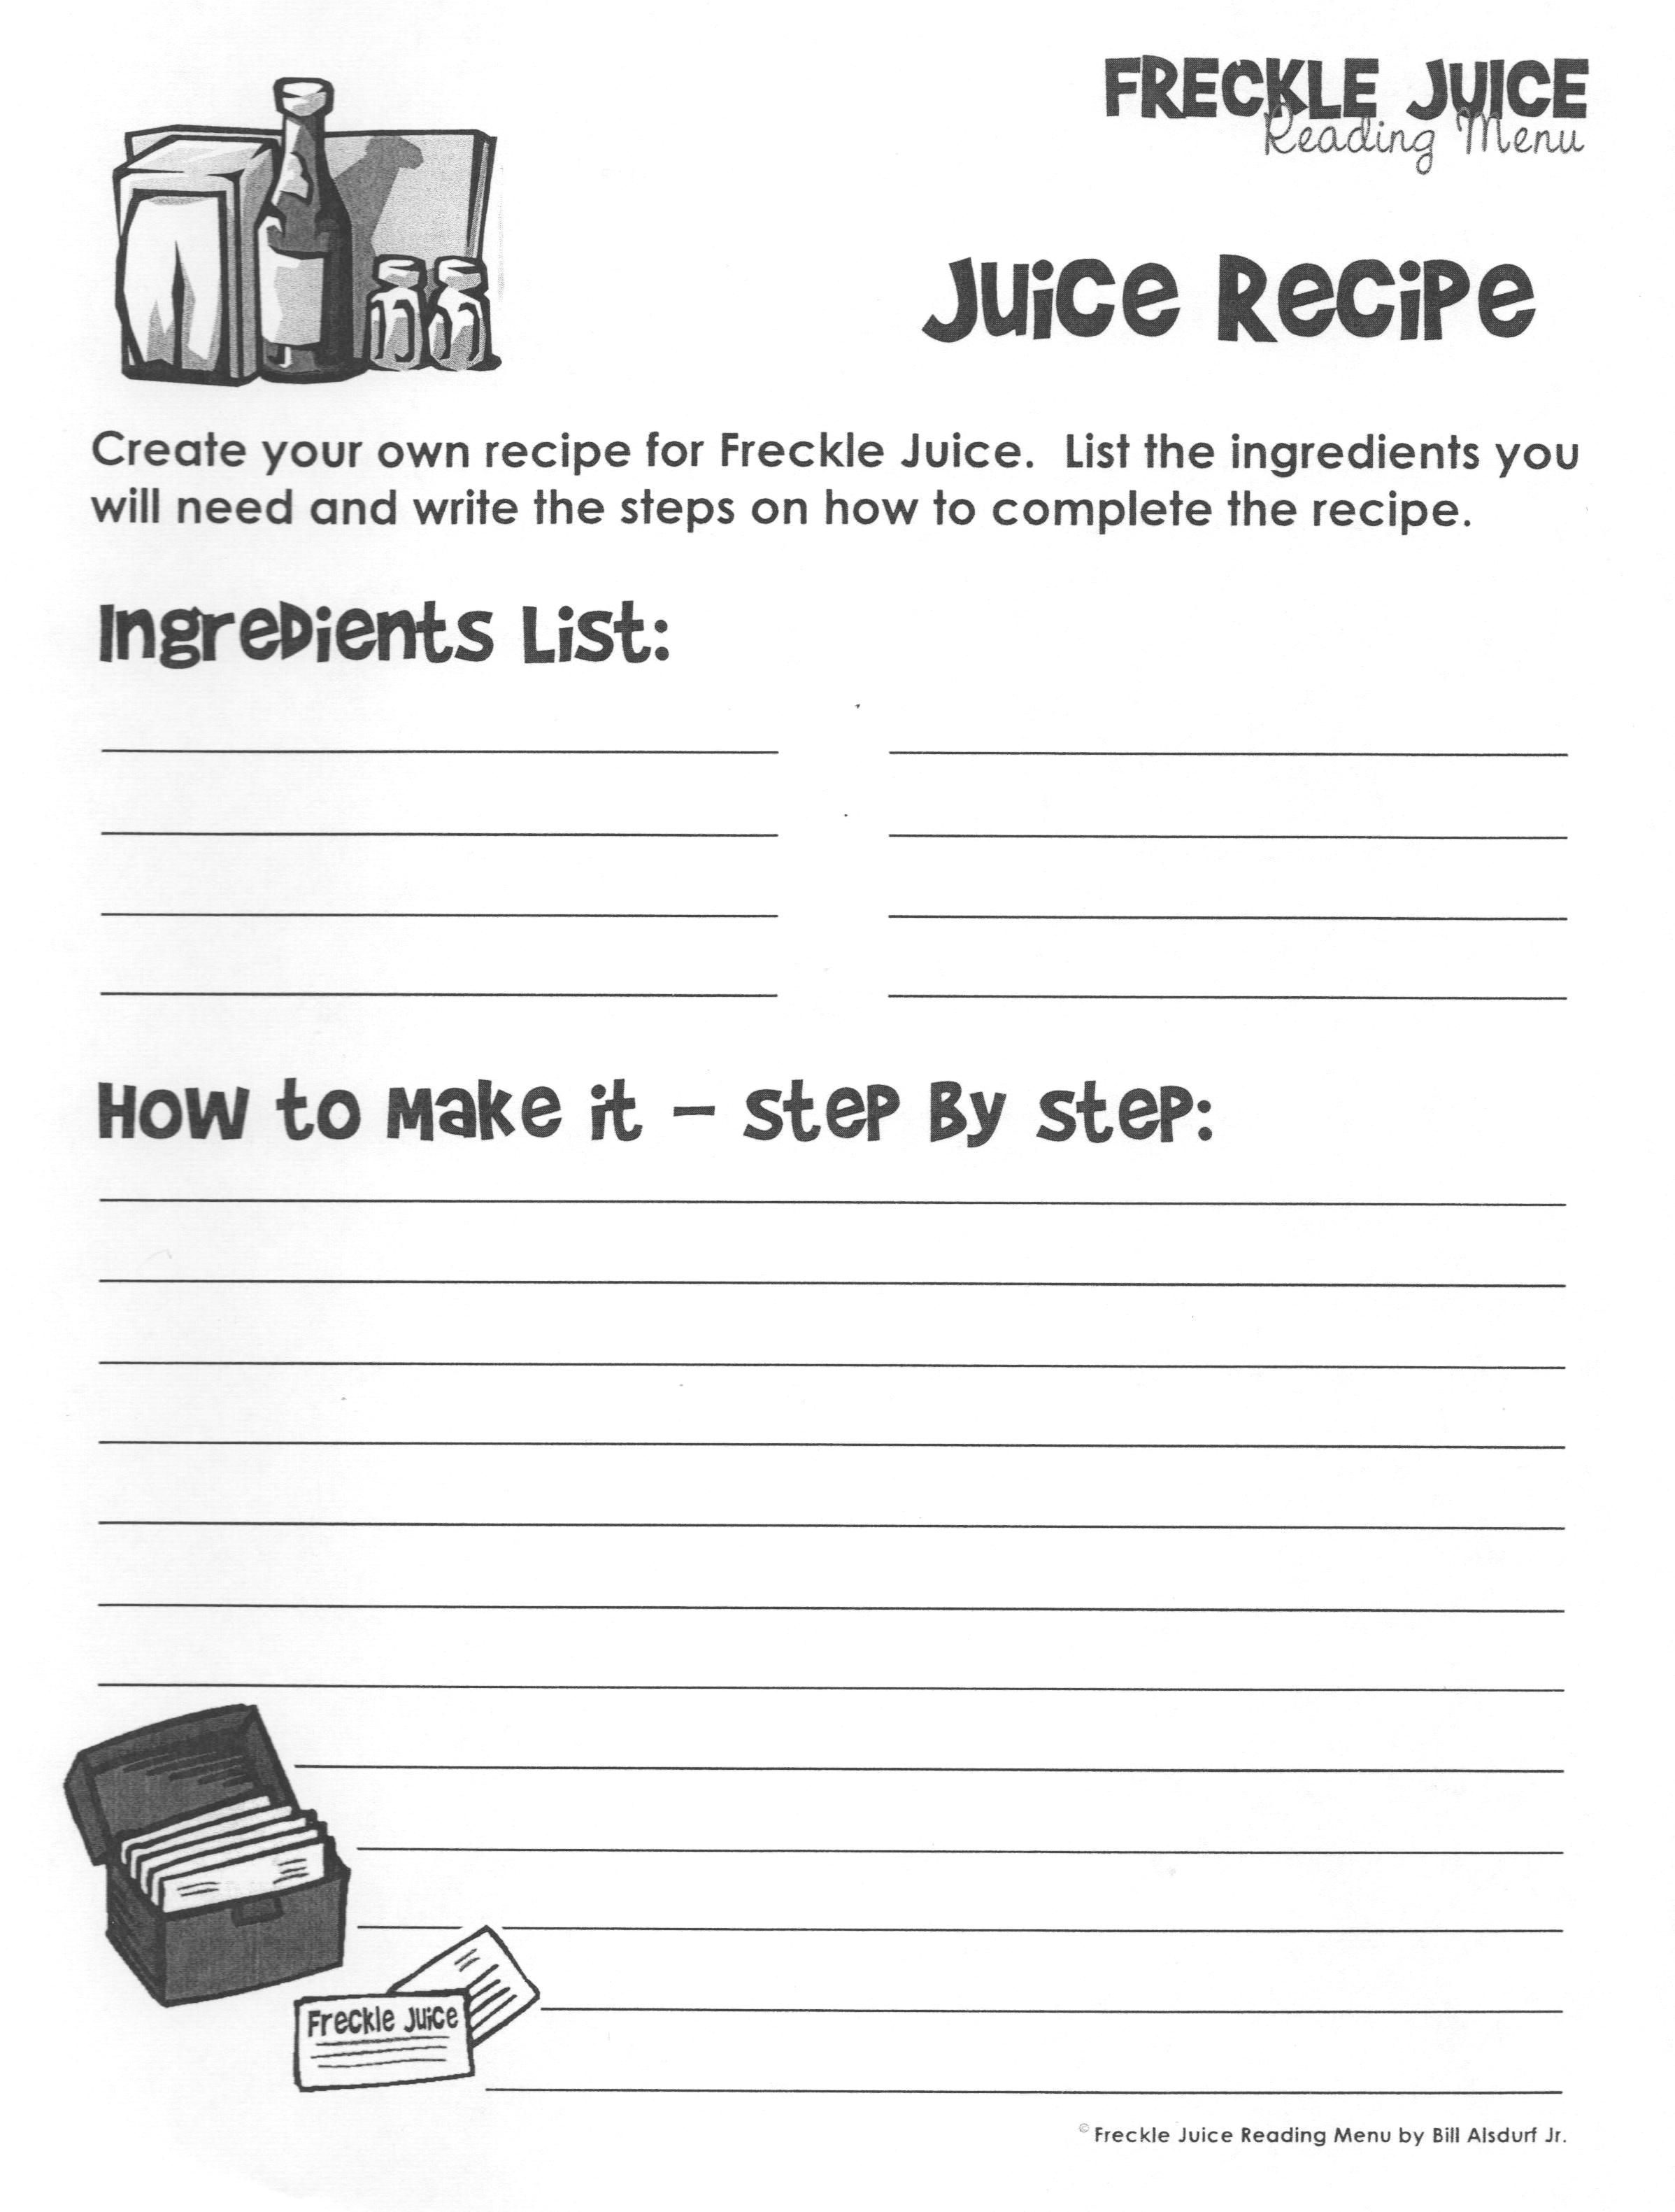 Freckle Juice Recipe